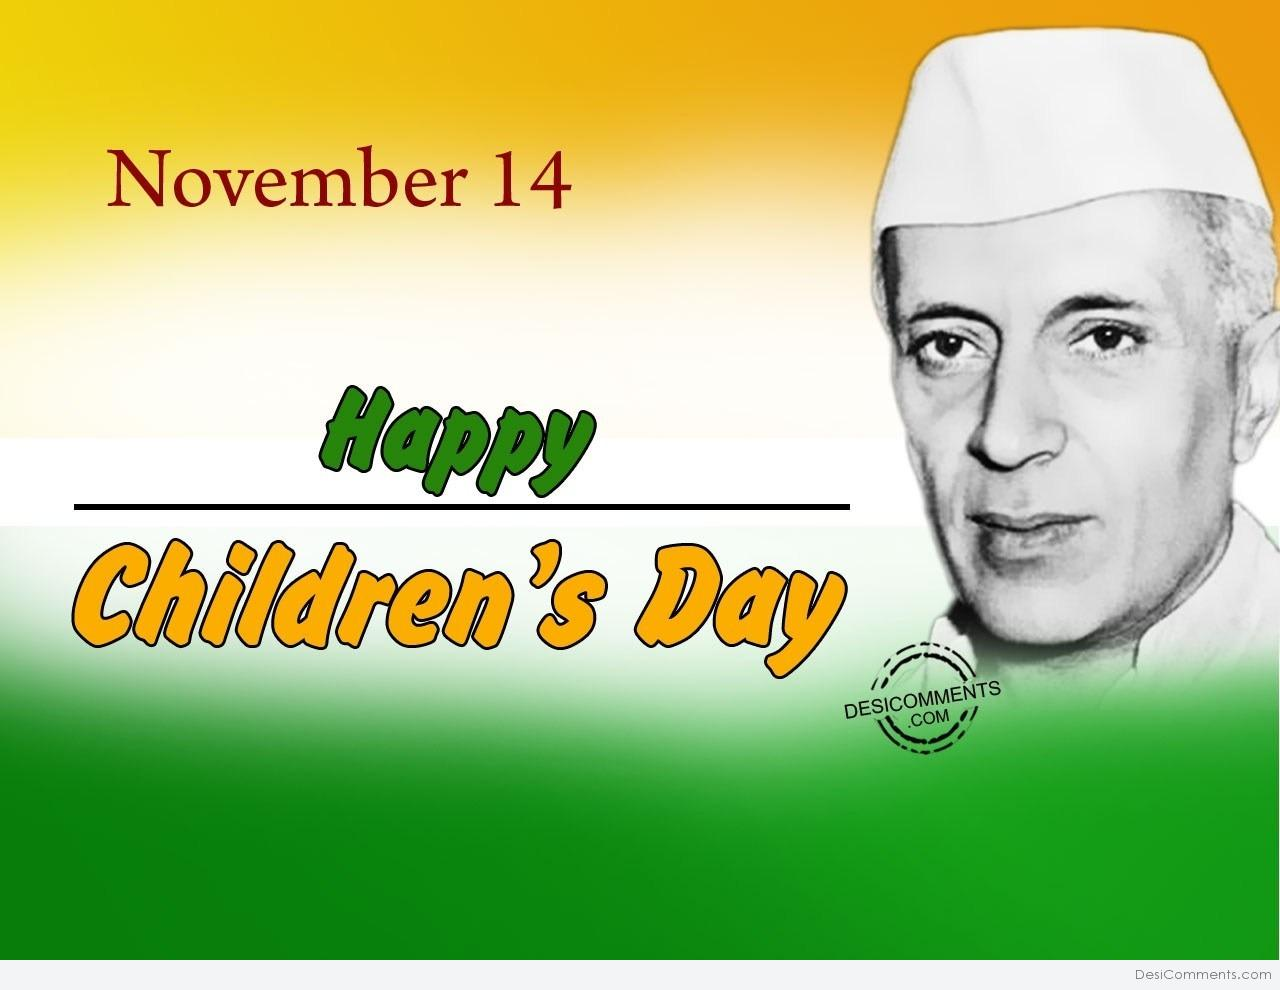 Happy children's day  DesiComments.com